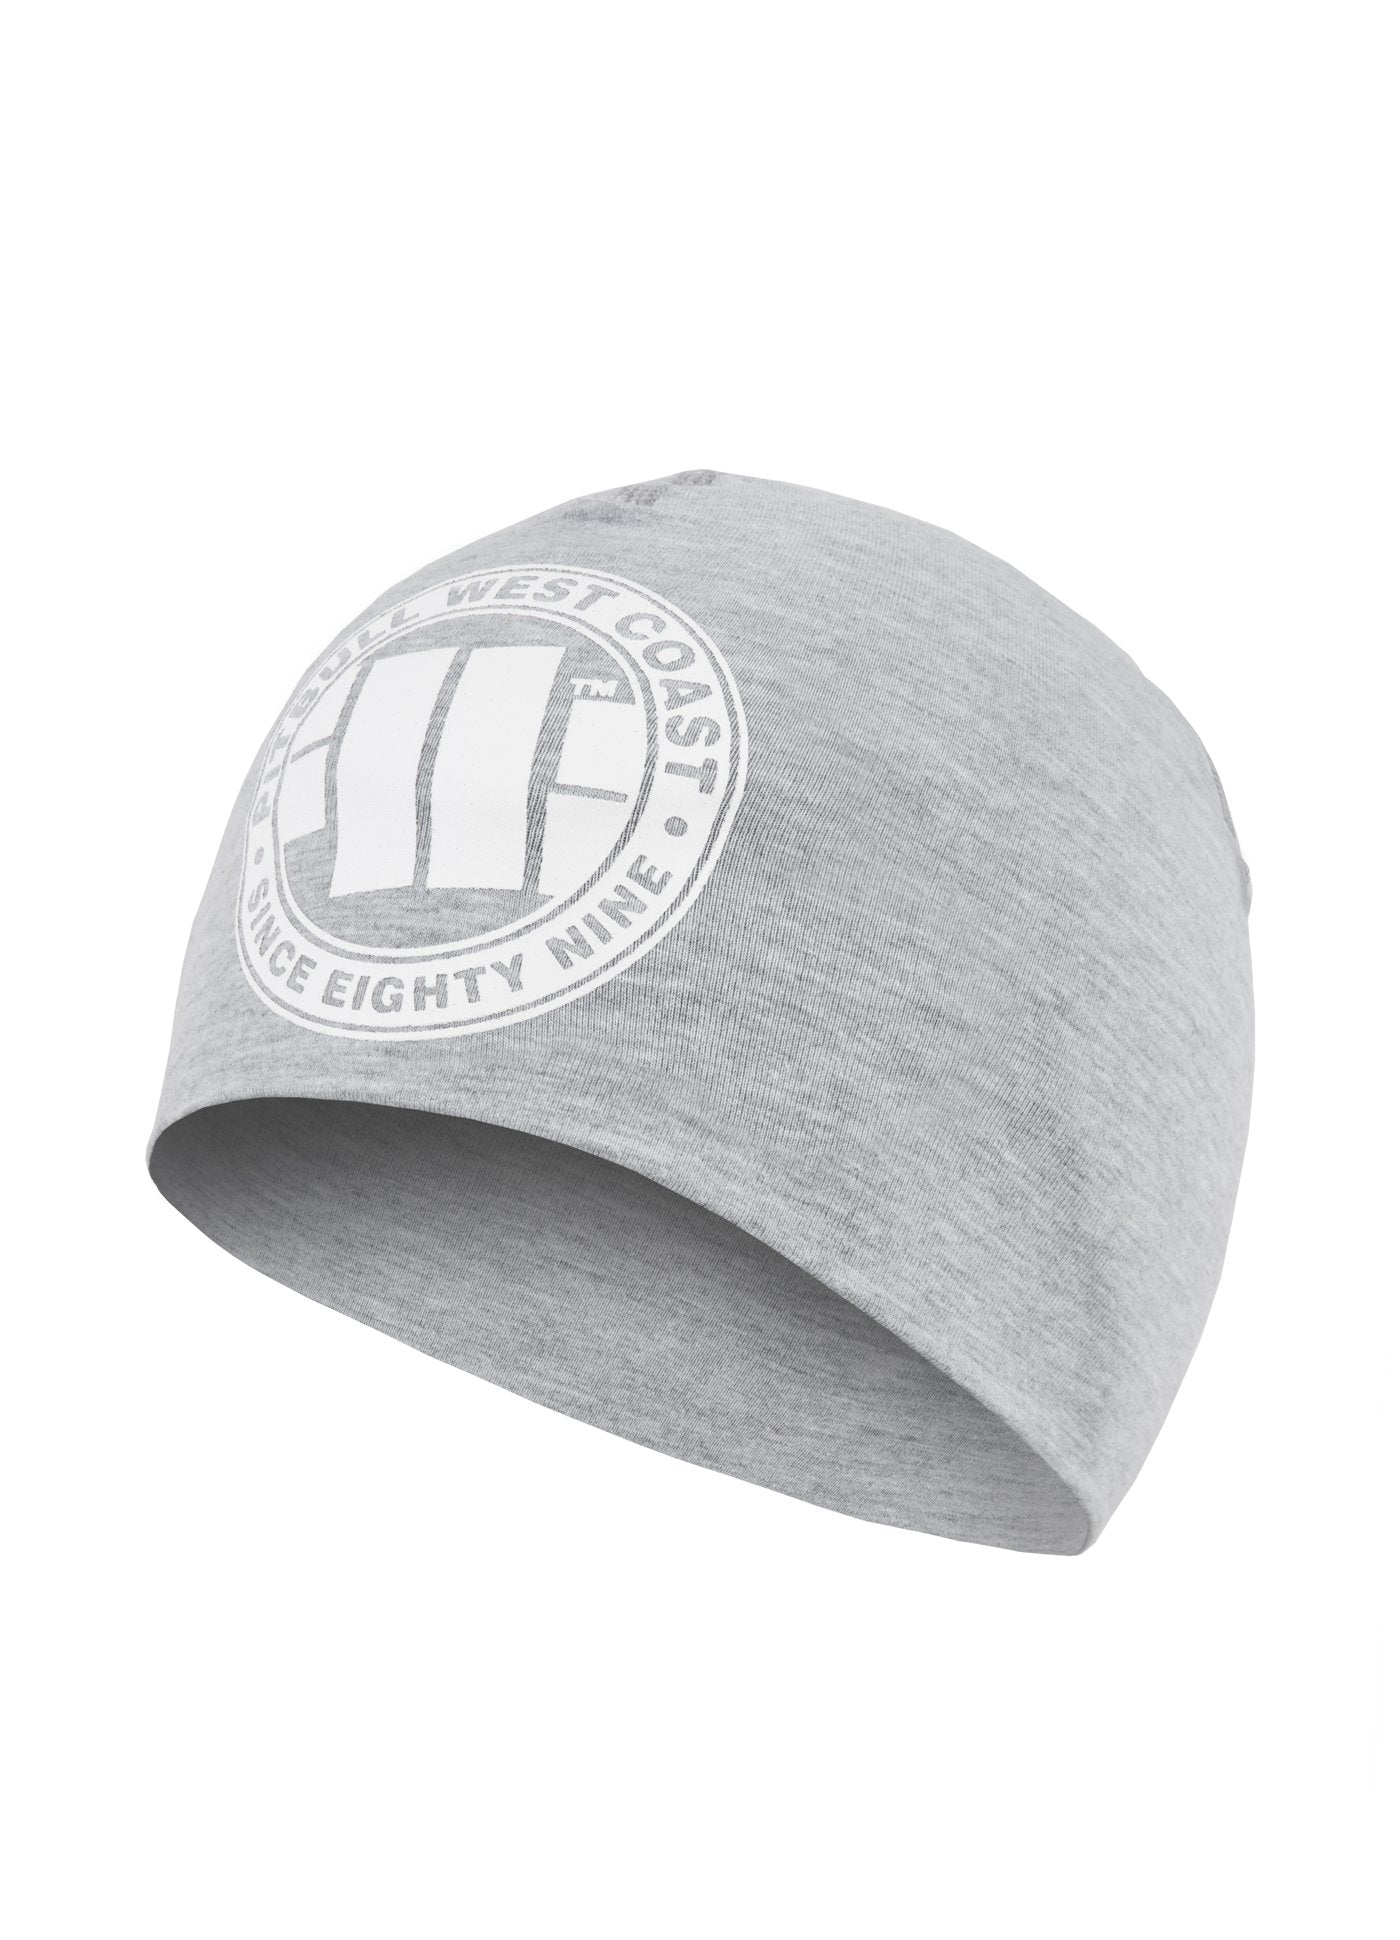 Compression Beanie BIG LOGO Grey - Pitbull West Coast U.S.A.